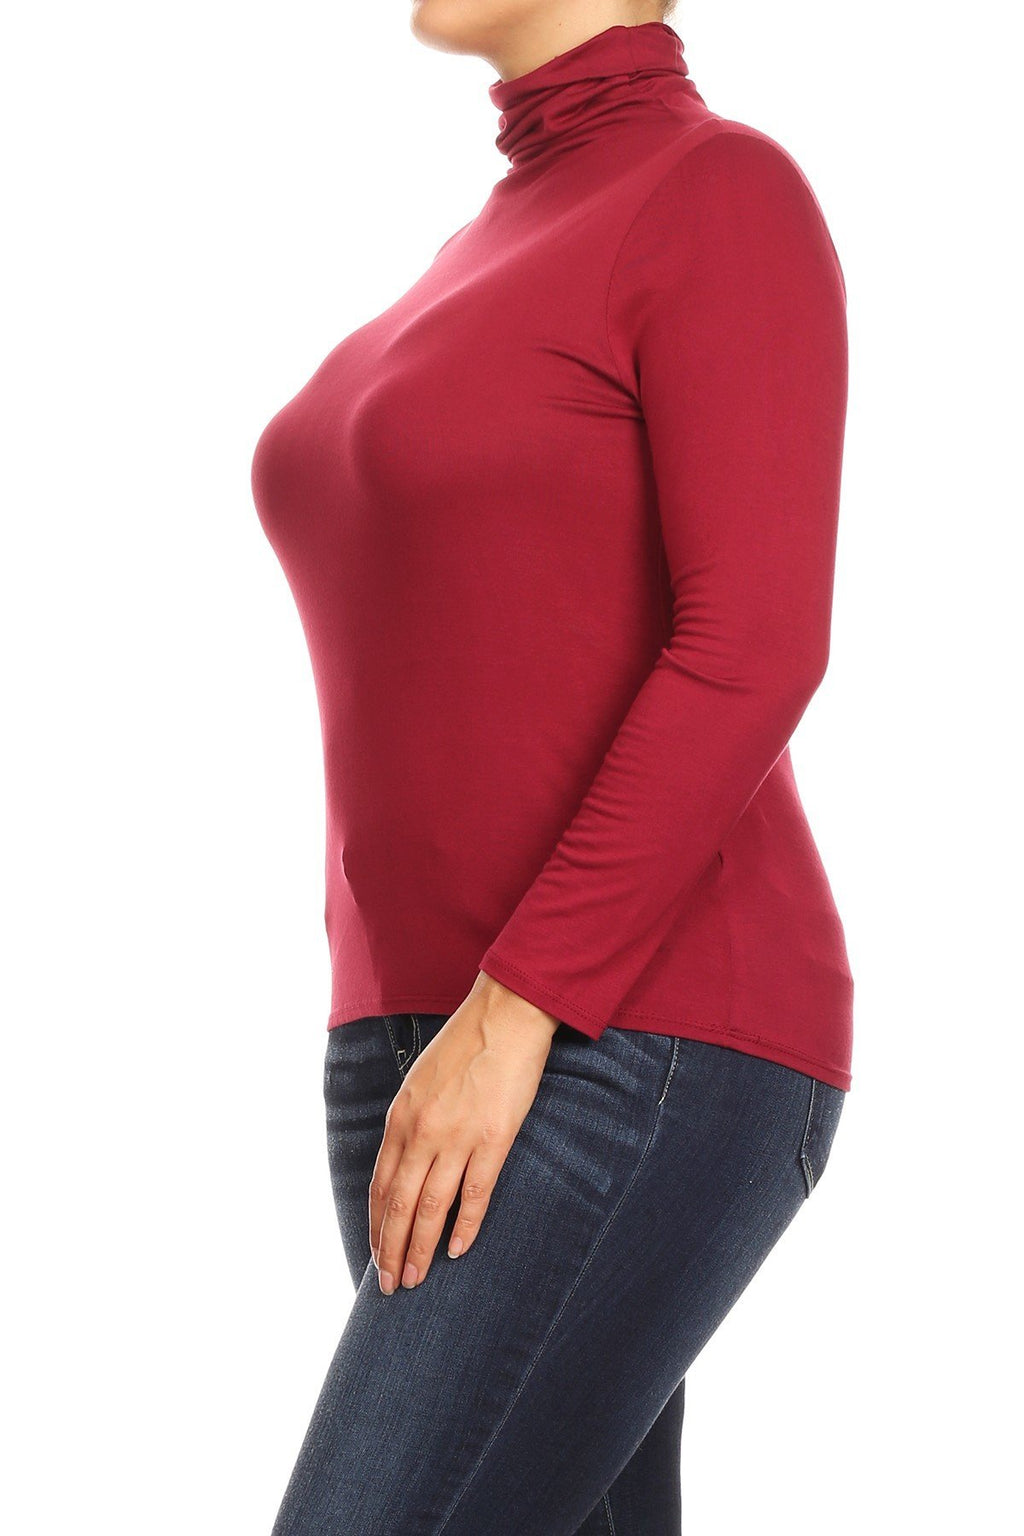 Solid Turtle Neck Tee Plus Size